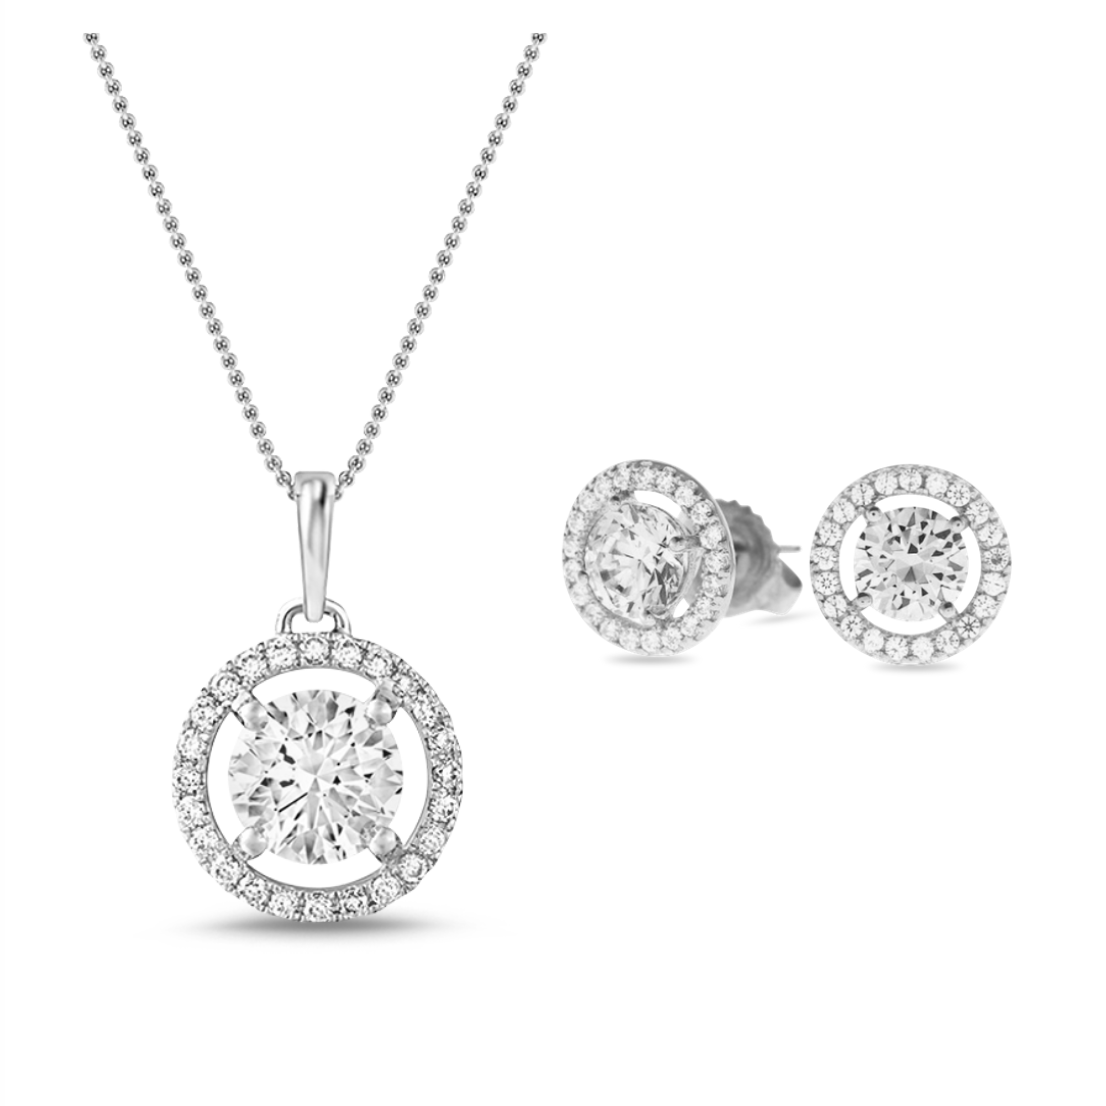 [PROMO BUNDLE] Celeste Halo Necklace Earrings Diamond Set